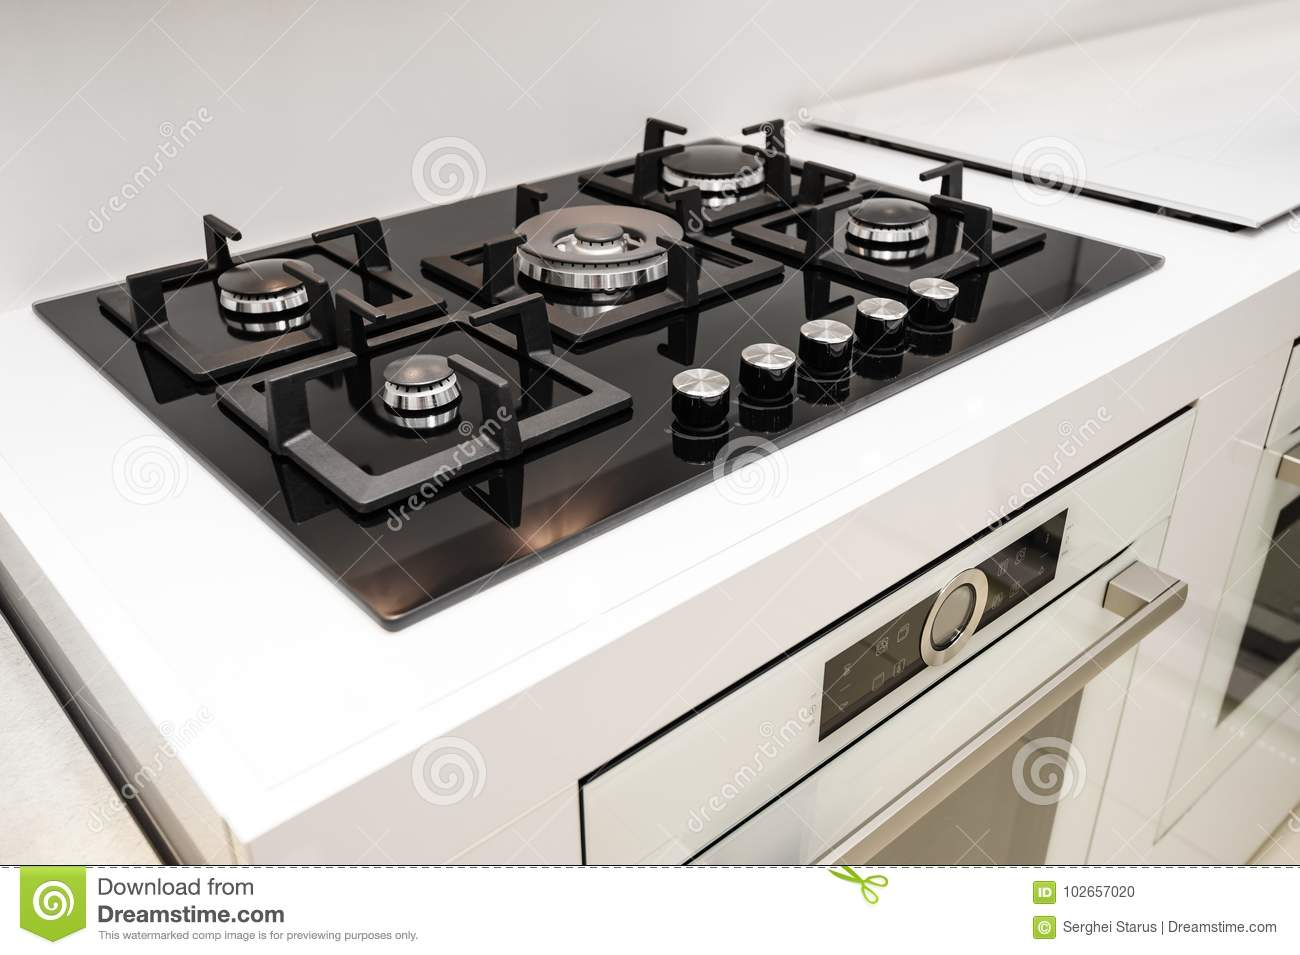 How to embed a gas stove in the countertop: step by step instructions 60